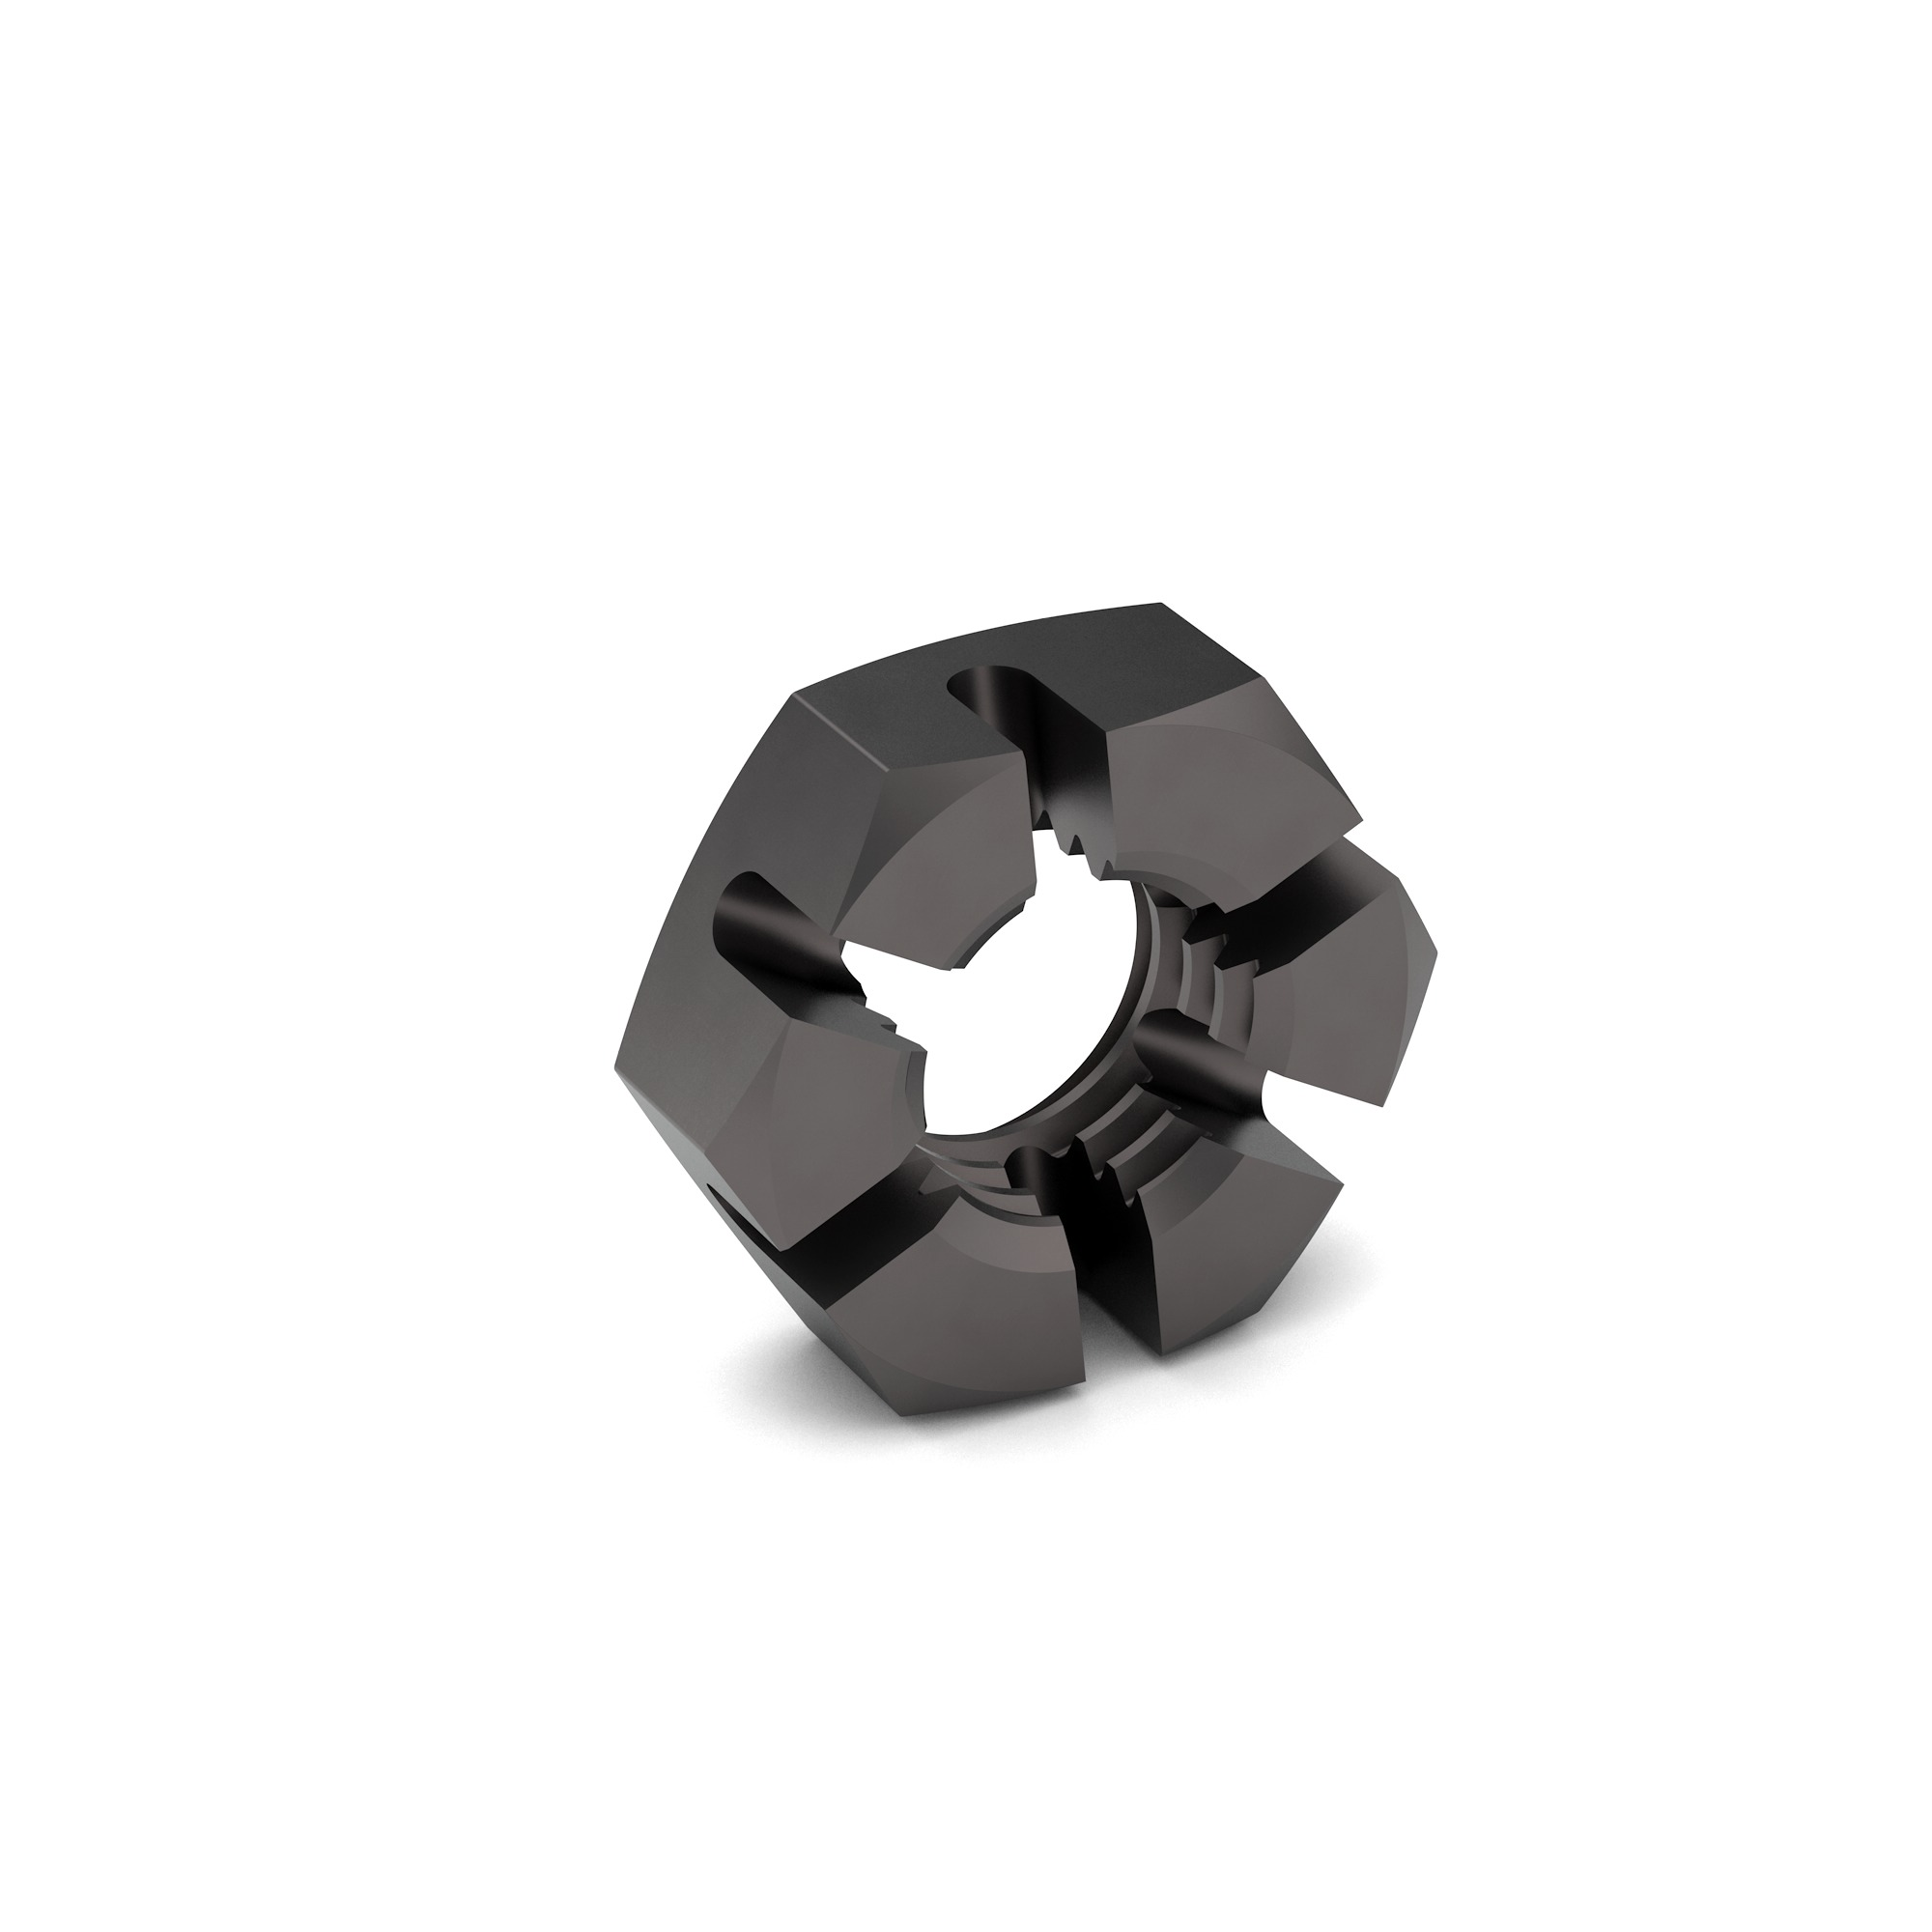 1/2-13 Carbon Steel Slotted Hex Jam Nut Plain Finish